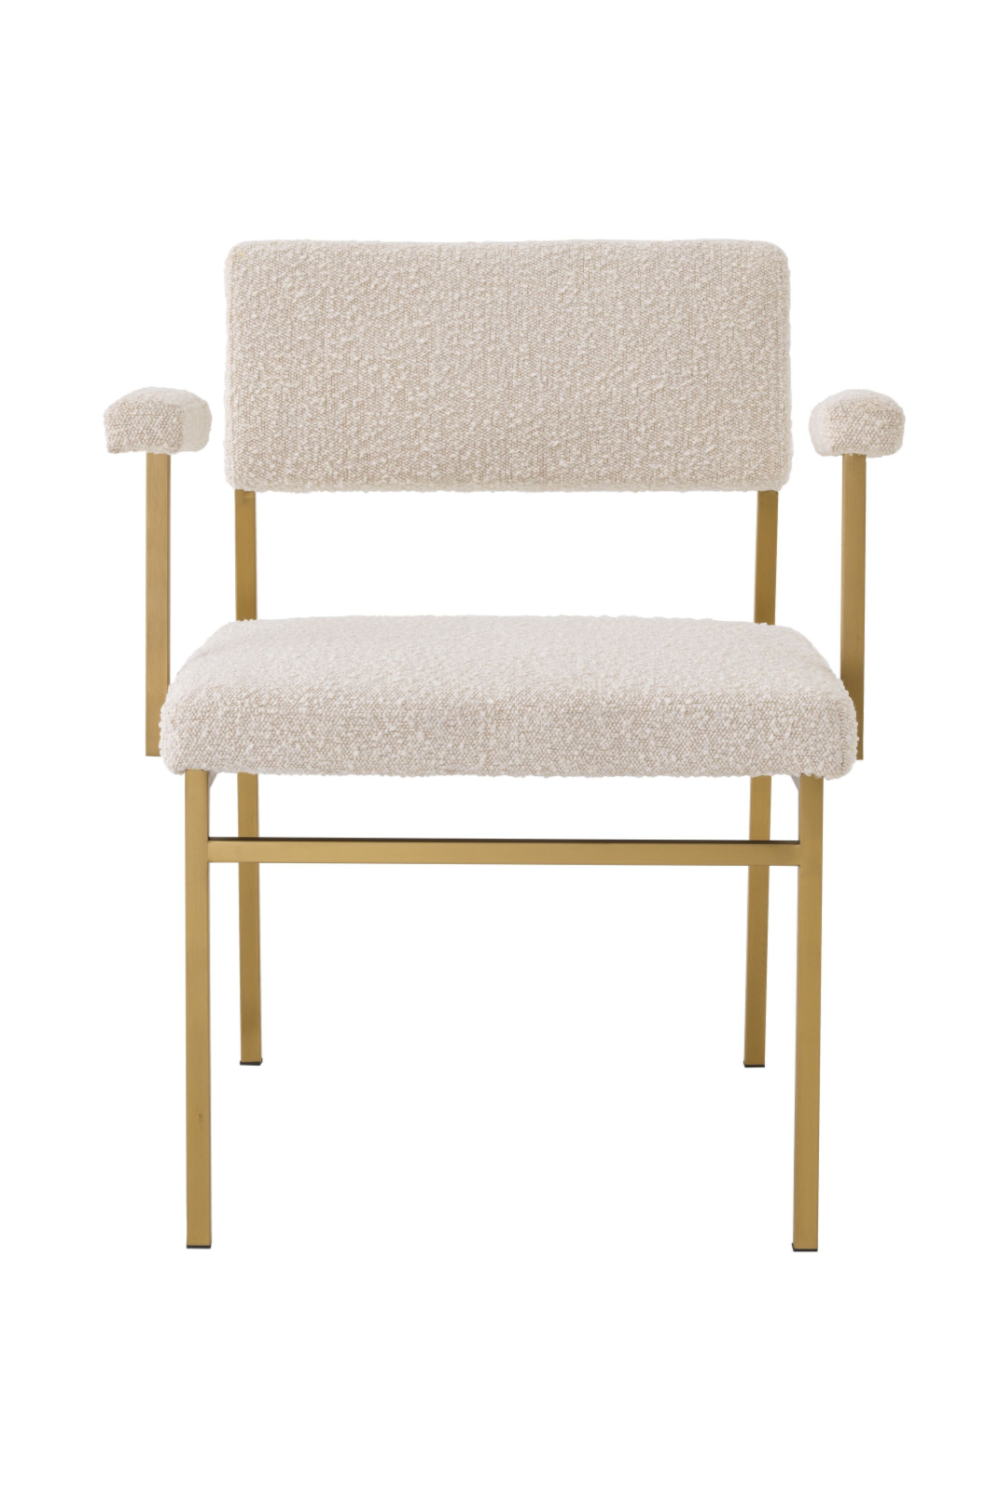 Bouclé Cream Brass Accent Chair | Eichholtz Dunmore